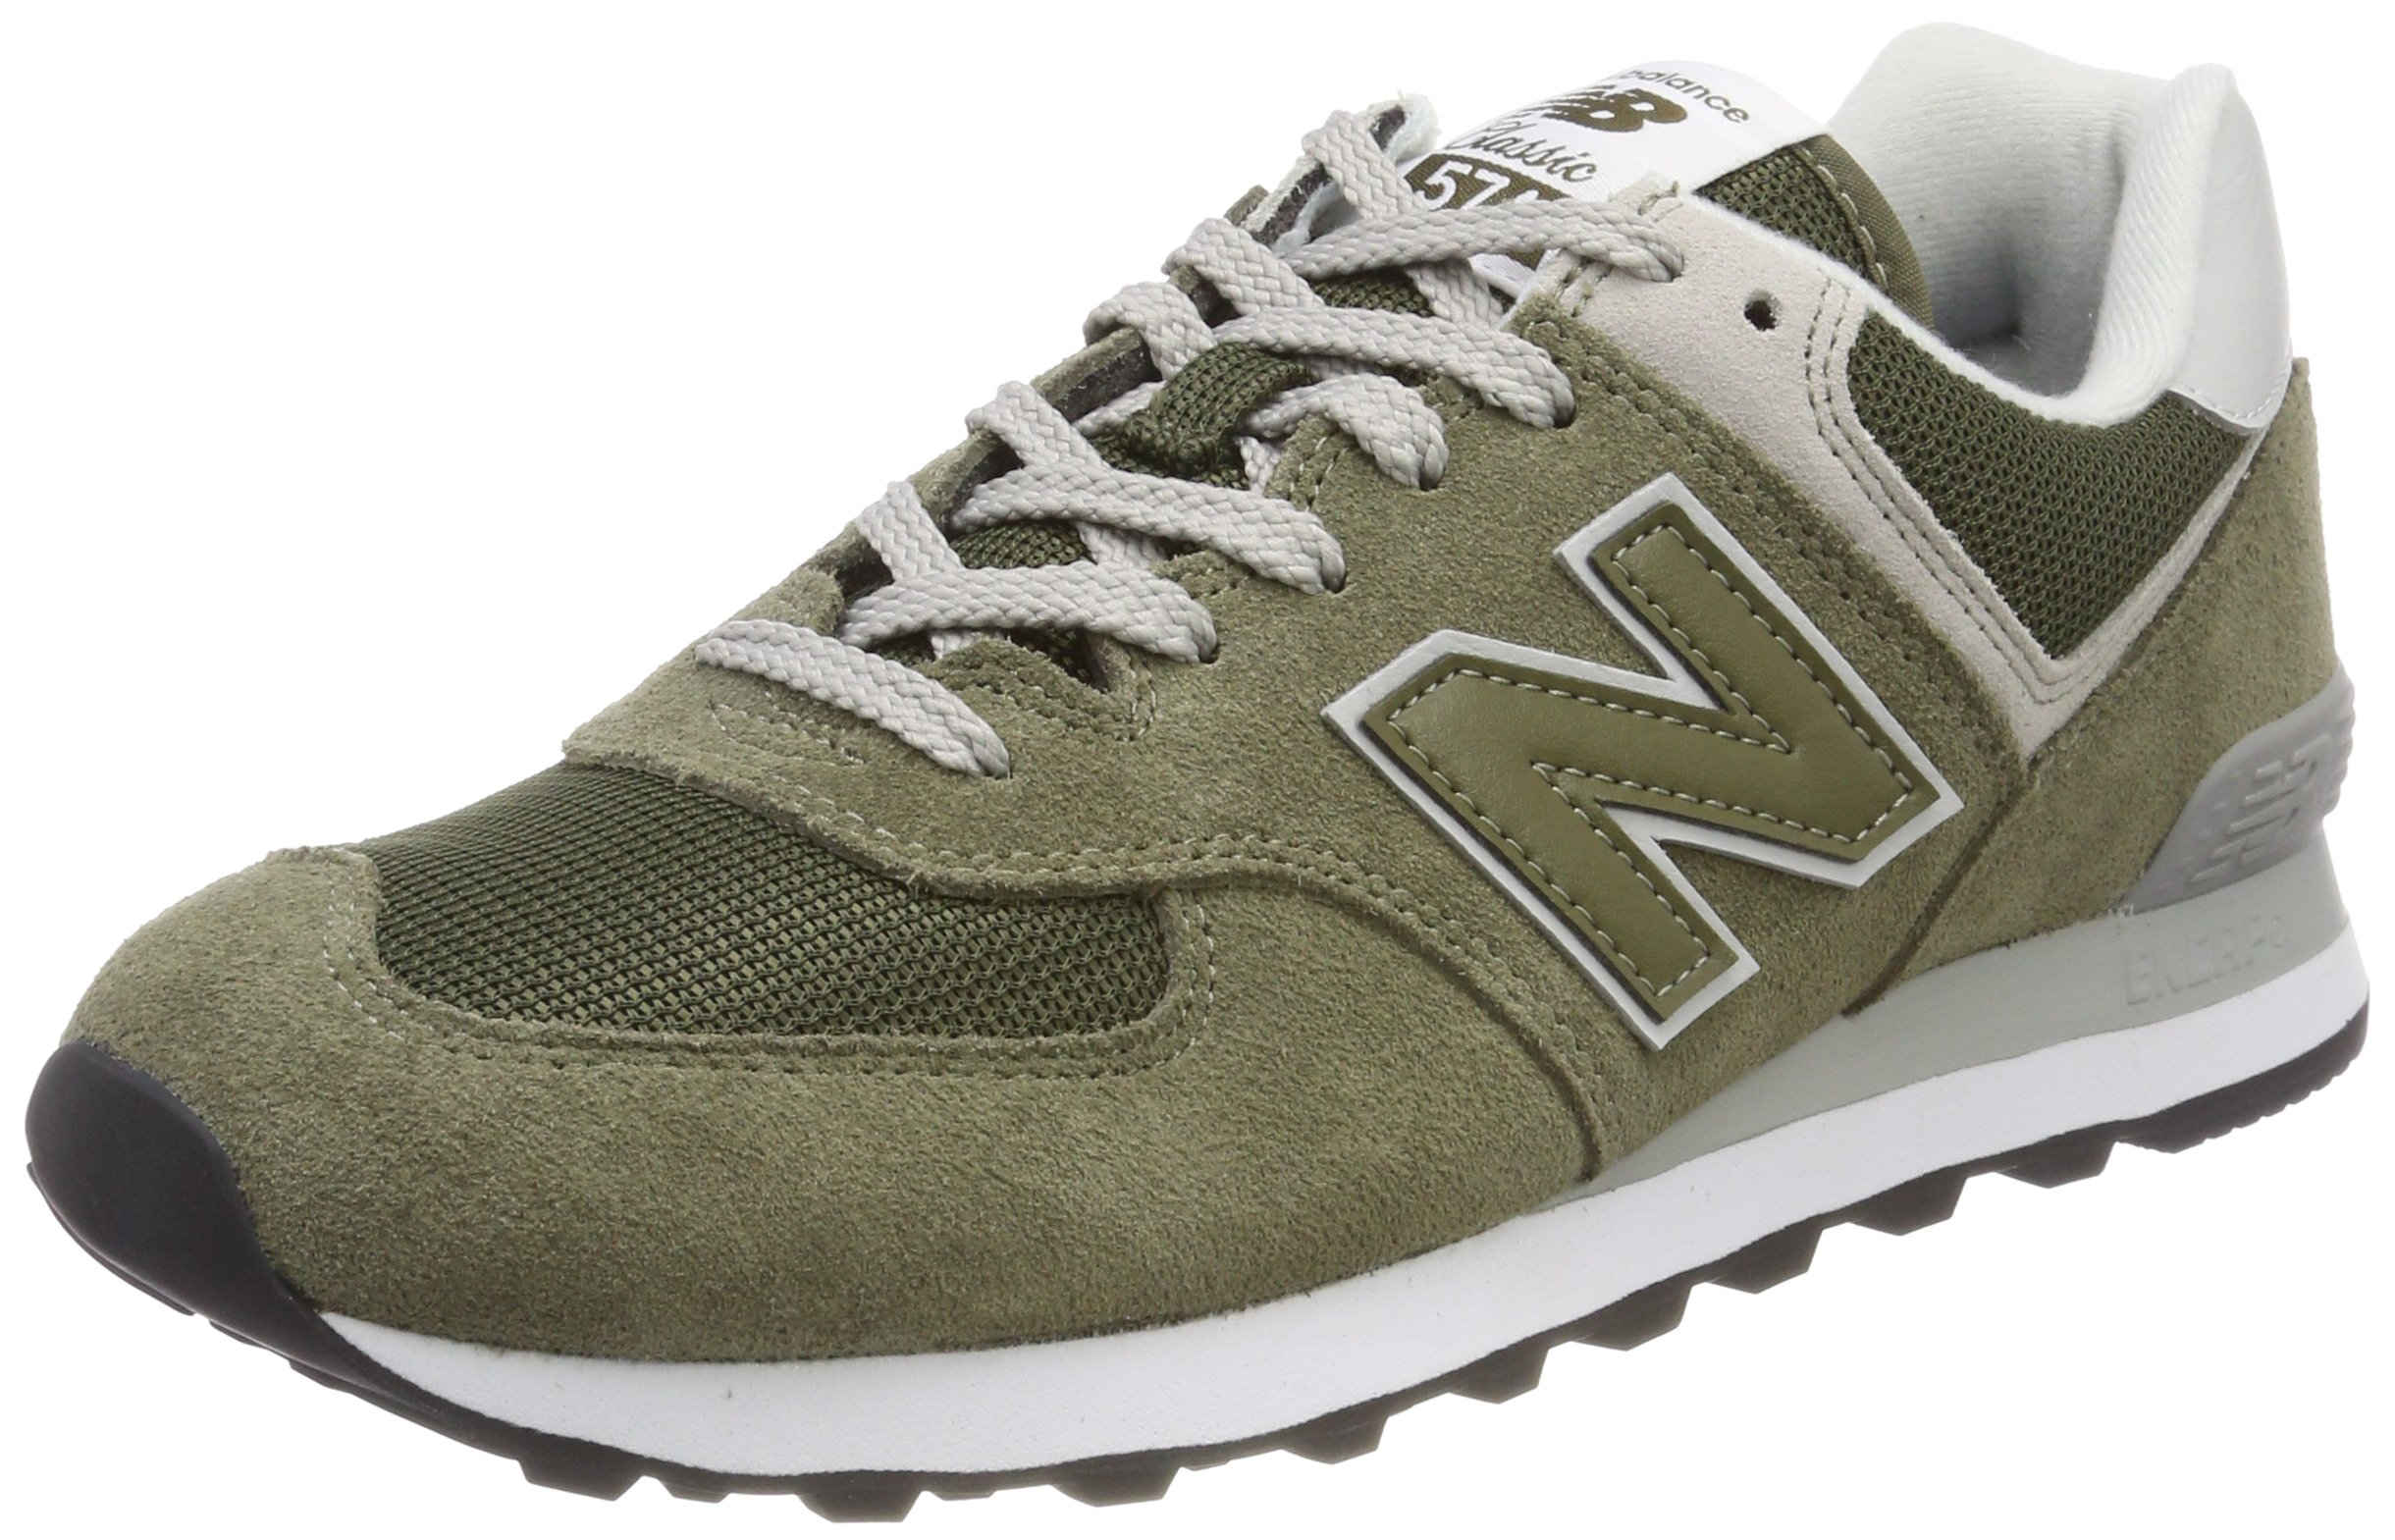 0460c09887be4 Best Rated in Men's Trainers & Helpful Customer Reviews - Amazon.co.uk